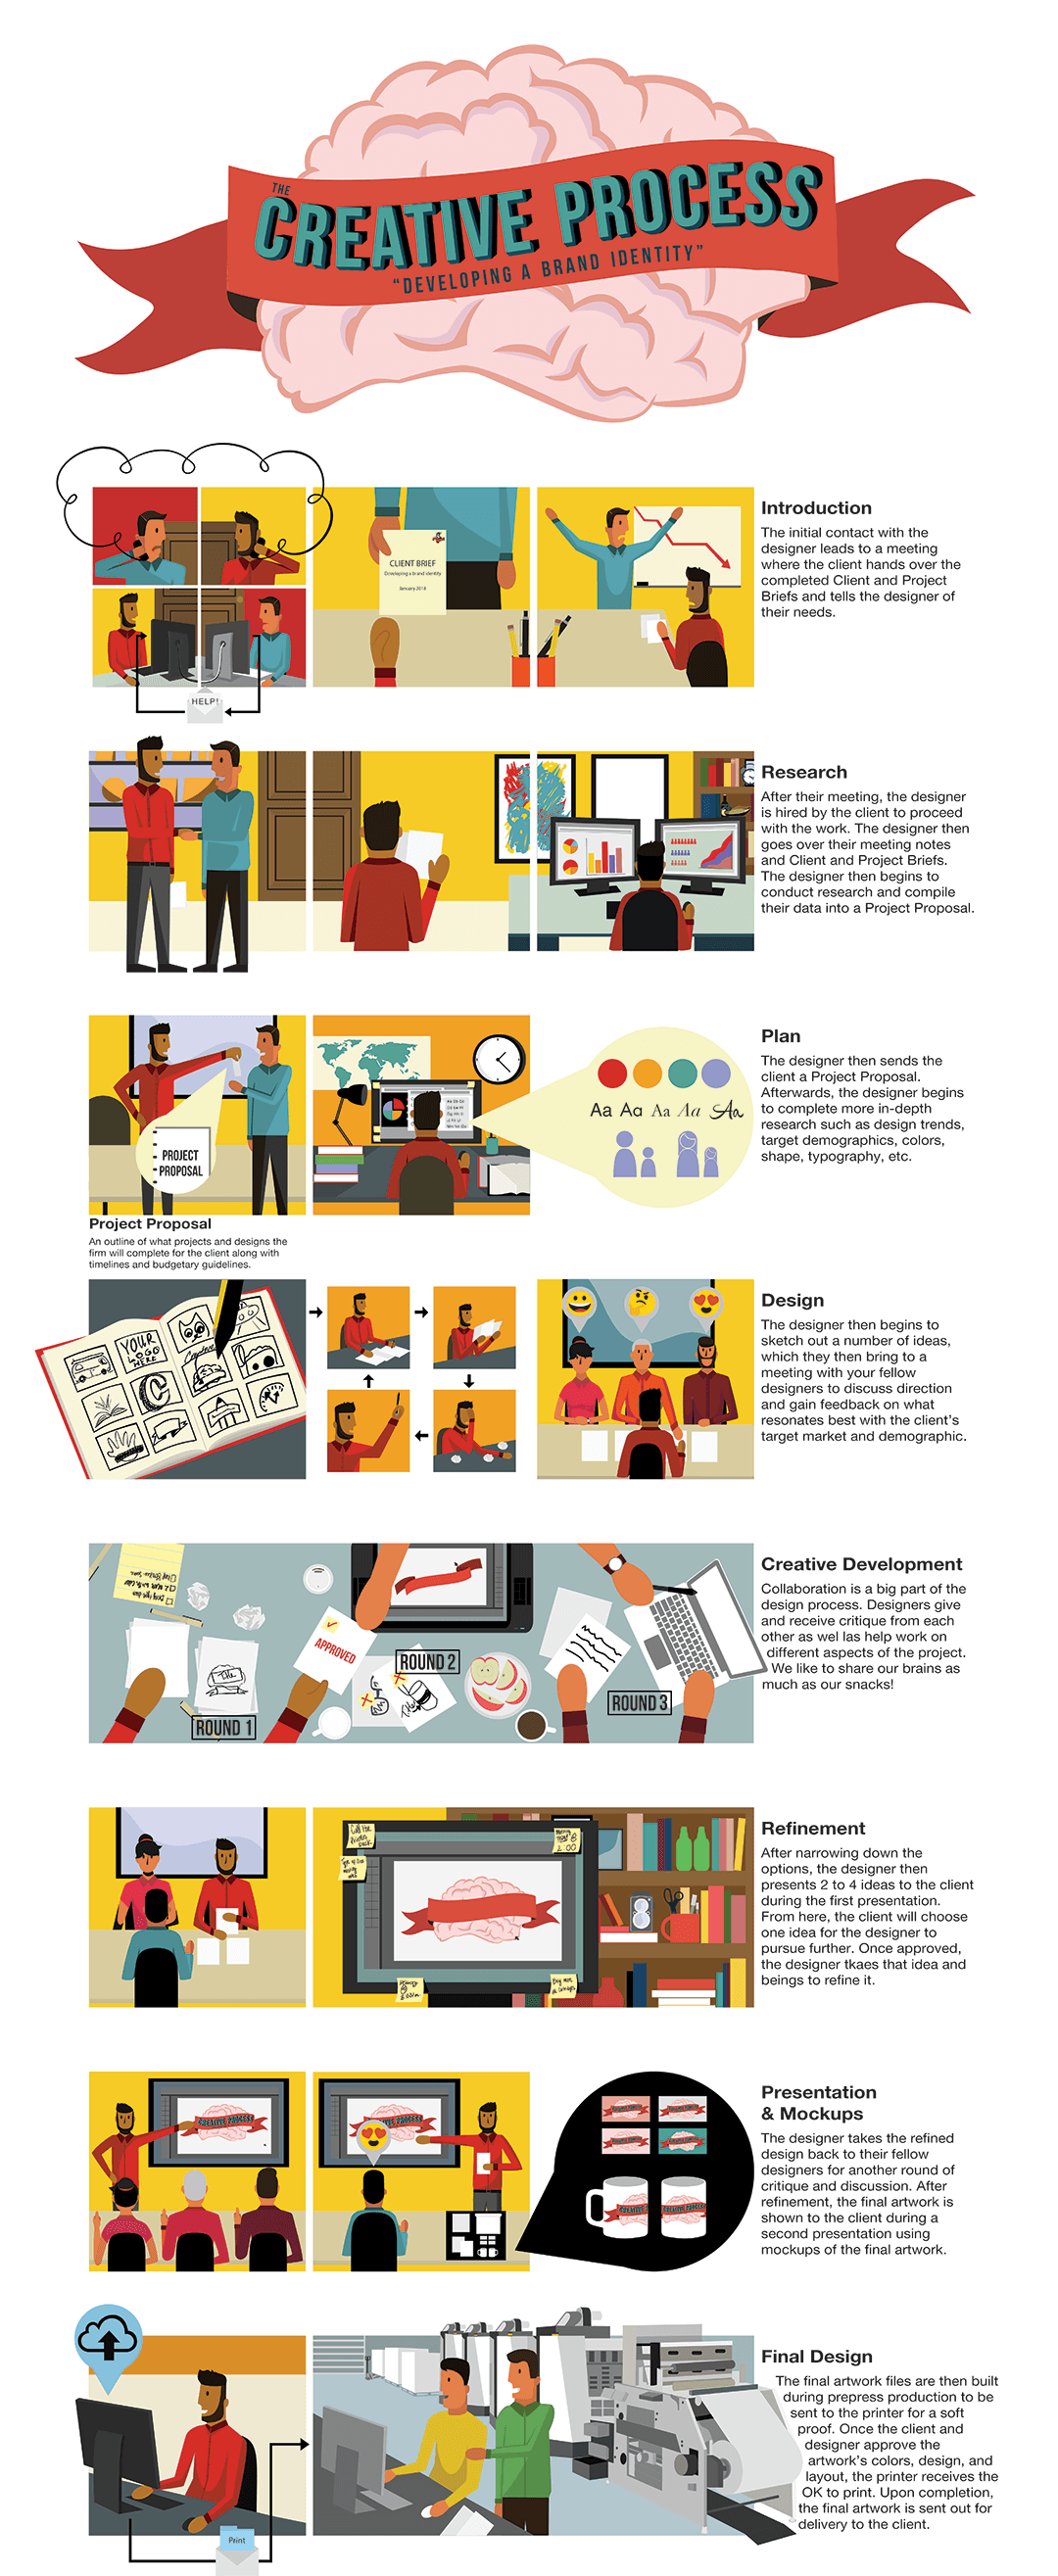 BR-CreativeProcess-Infographic.png